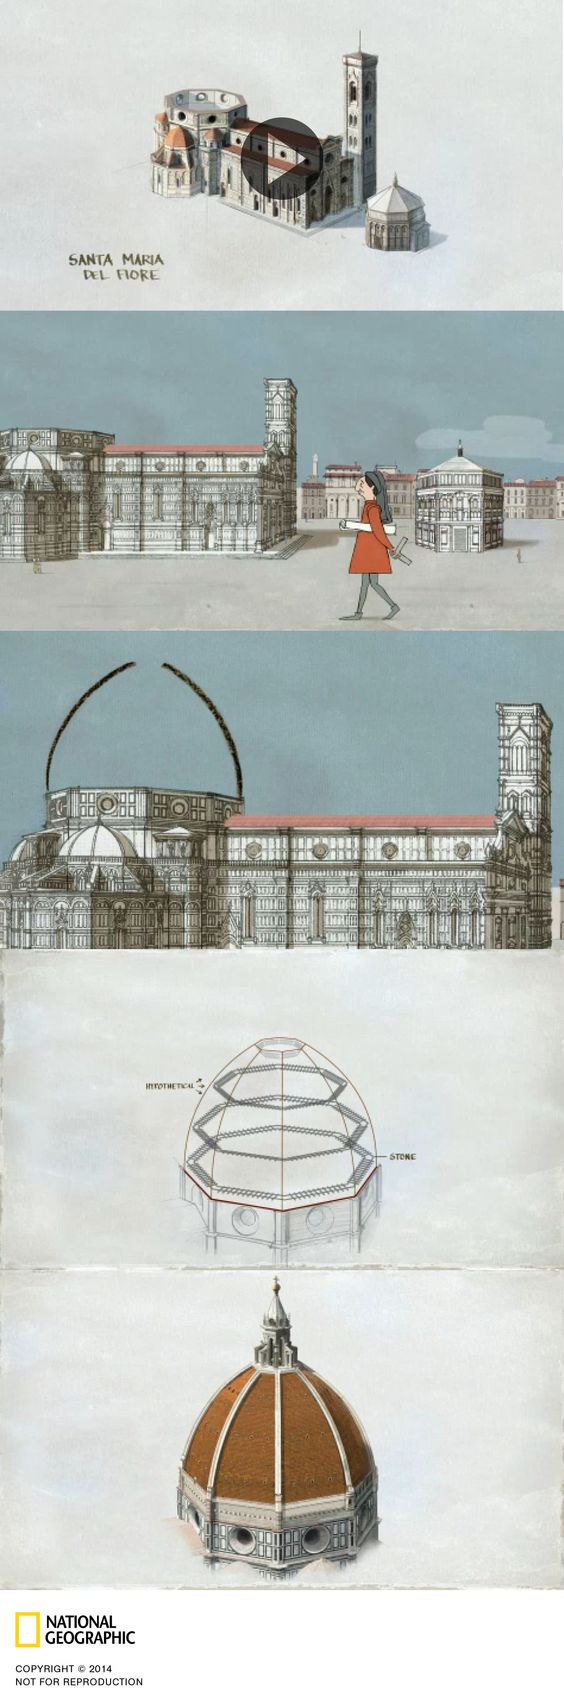 IL DUOMO DARING DESIGN --- Discover in this motion graphic the construction theories behind the dome of Santa Maria del Fiore. By Fernando G. Baptista, Matthew Twombly, Hans Weise and Lauren James. Published on February 2014